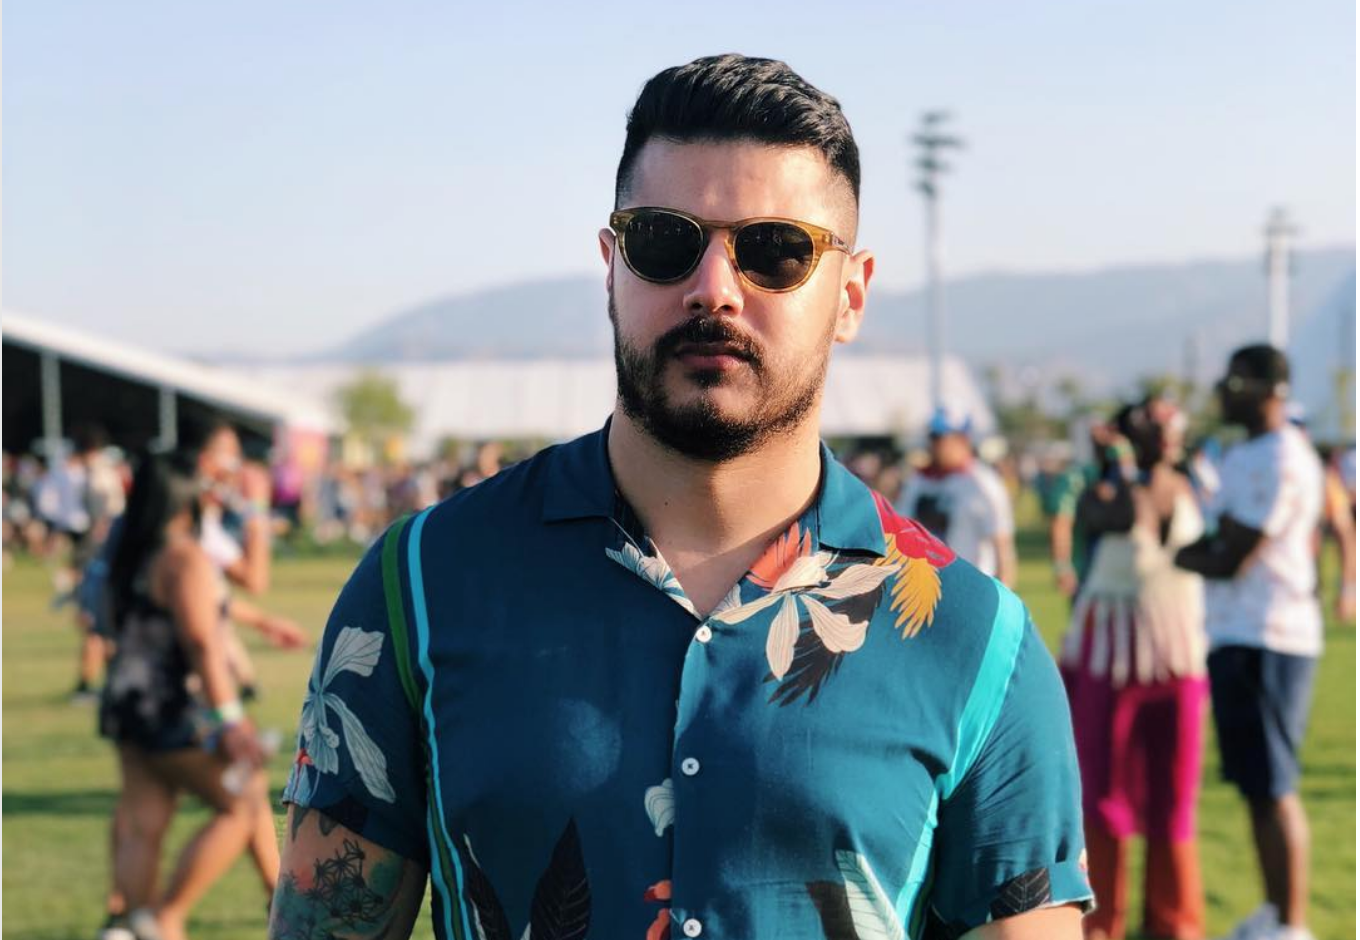 Best-Dressed Men at Coachella 2018 | Boy Toy Confidential